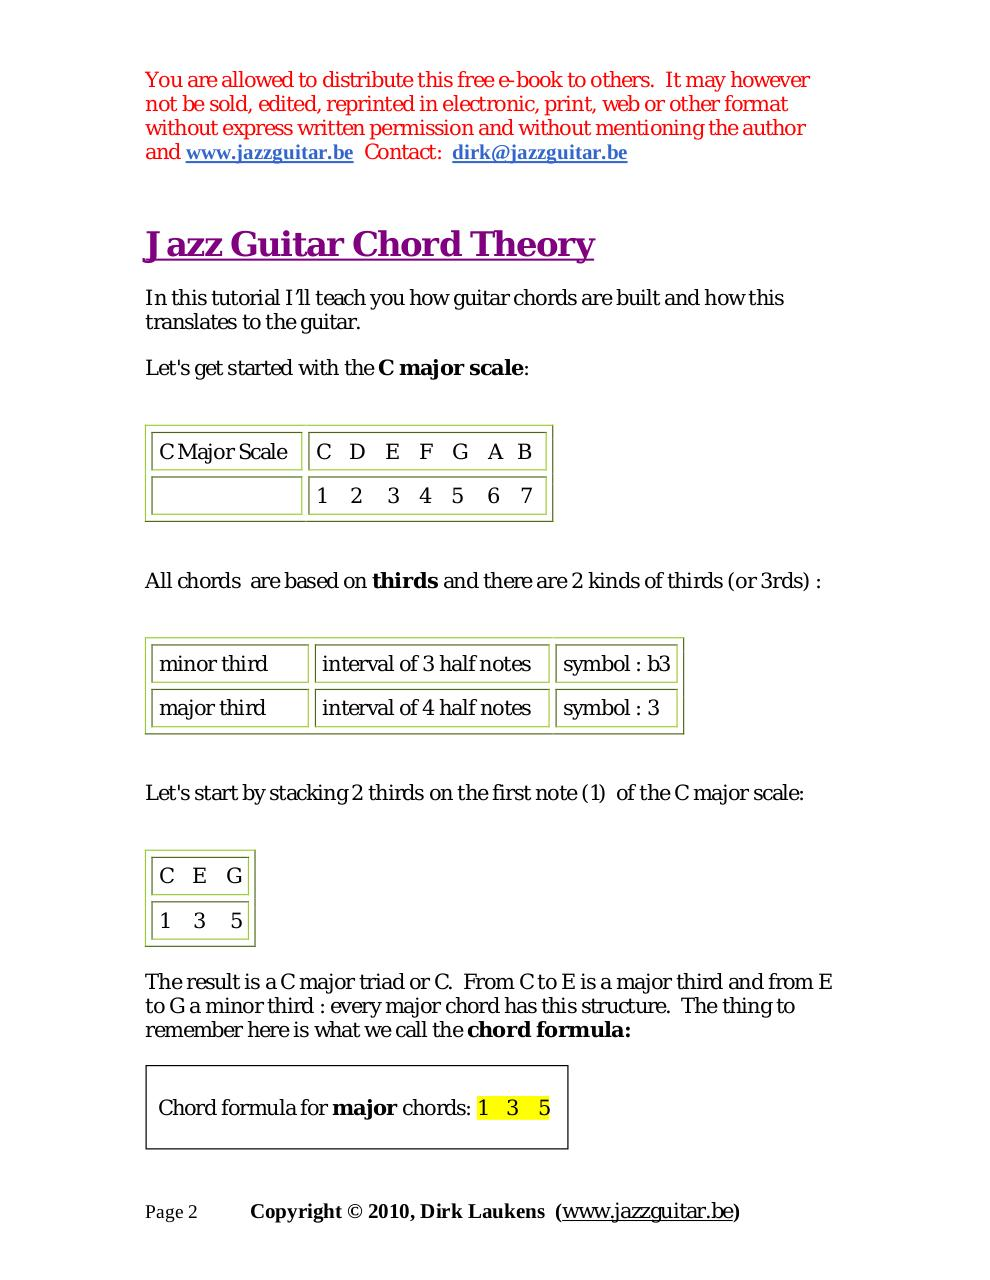 Jazz Guitar Chord Theory (part 1) - The Jazz Guitar Chords eBook pdf